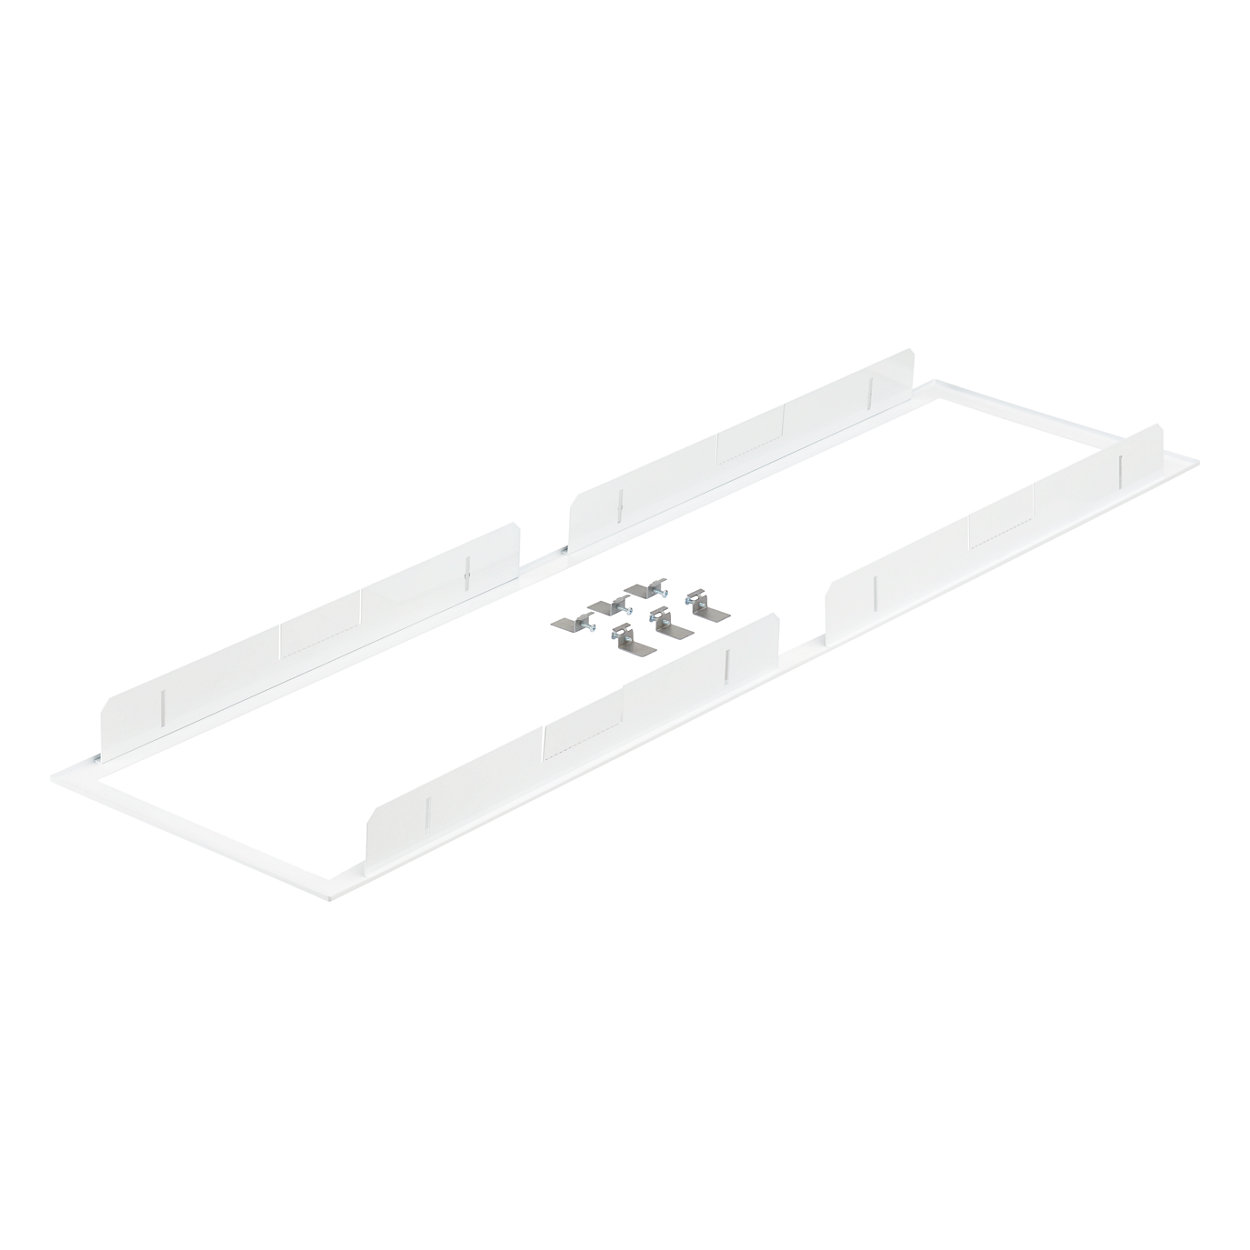 CoreLine Recessed – the clear choice for LED